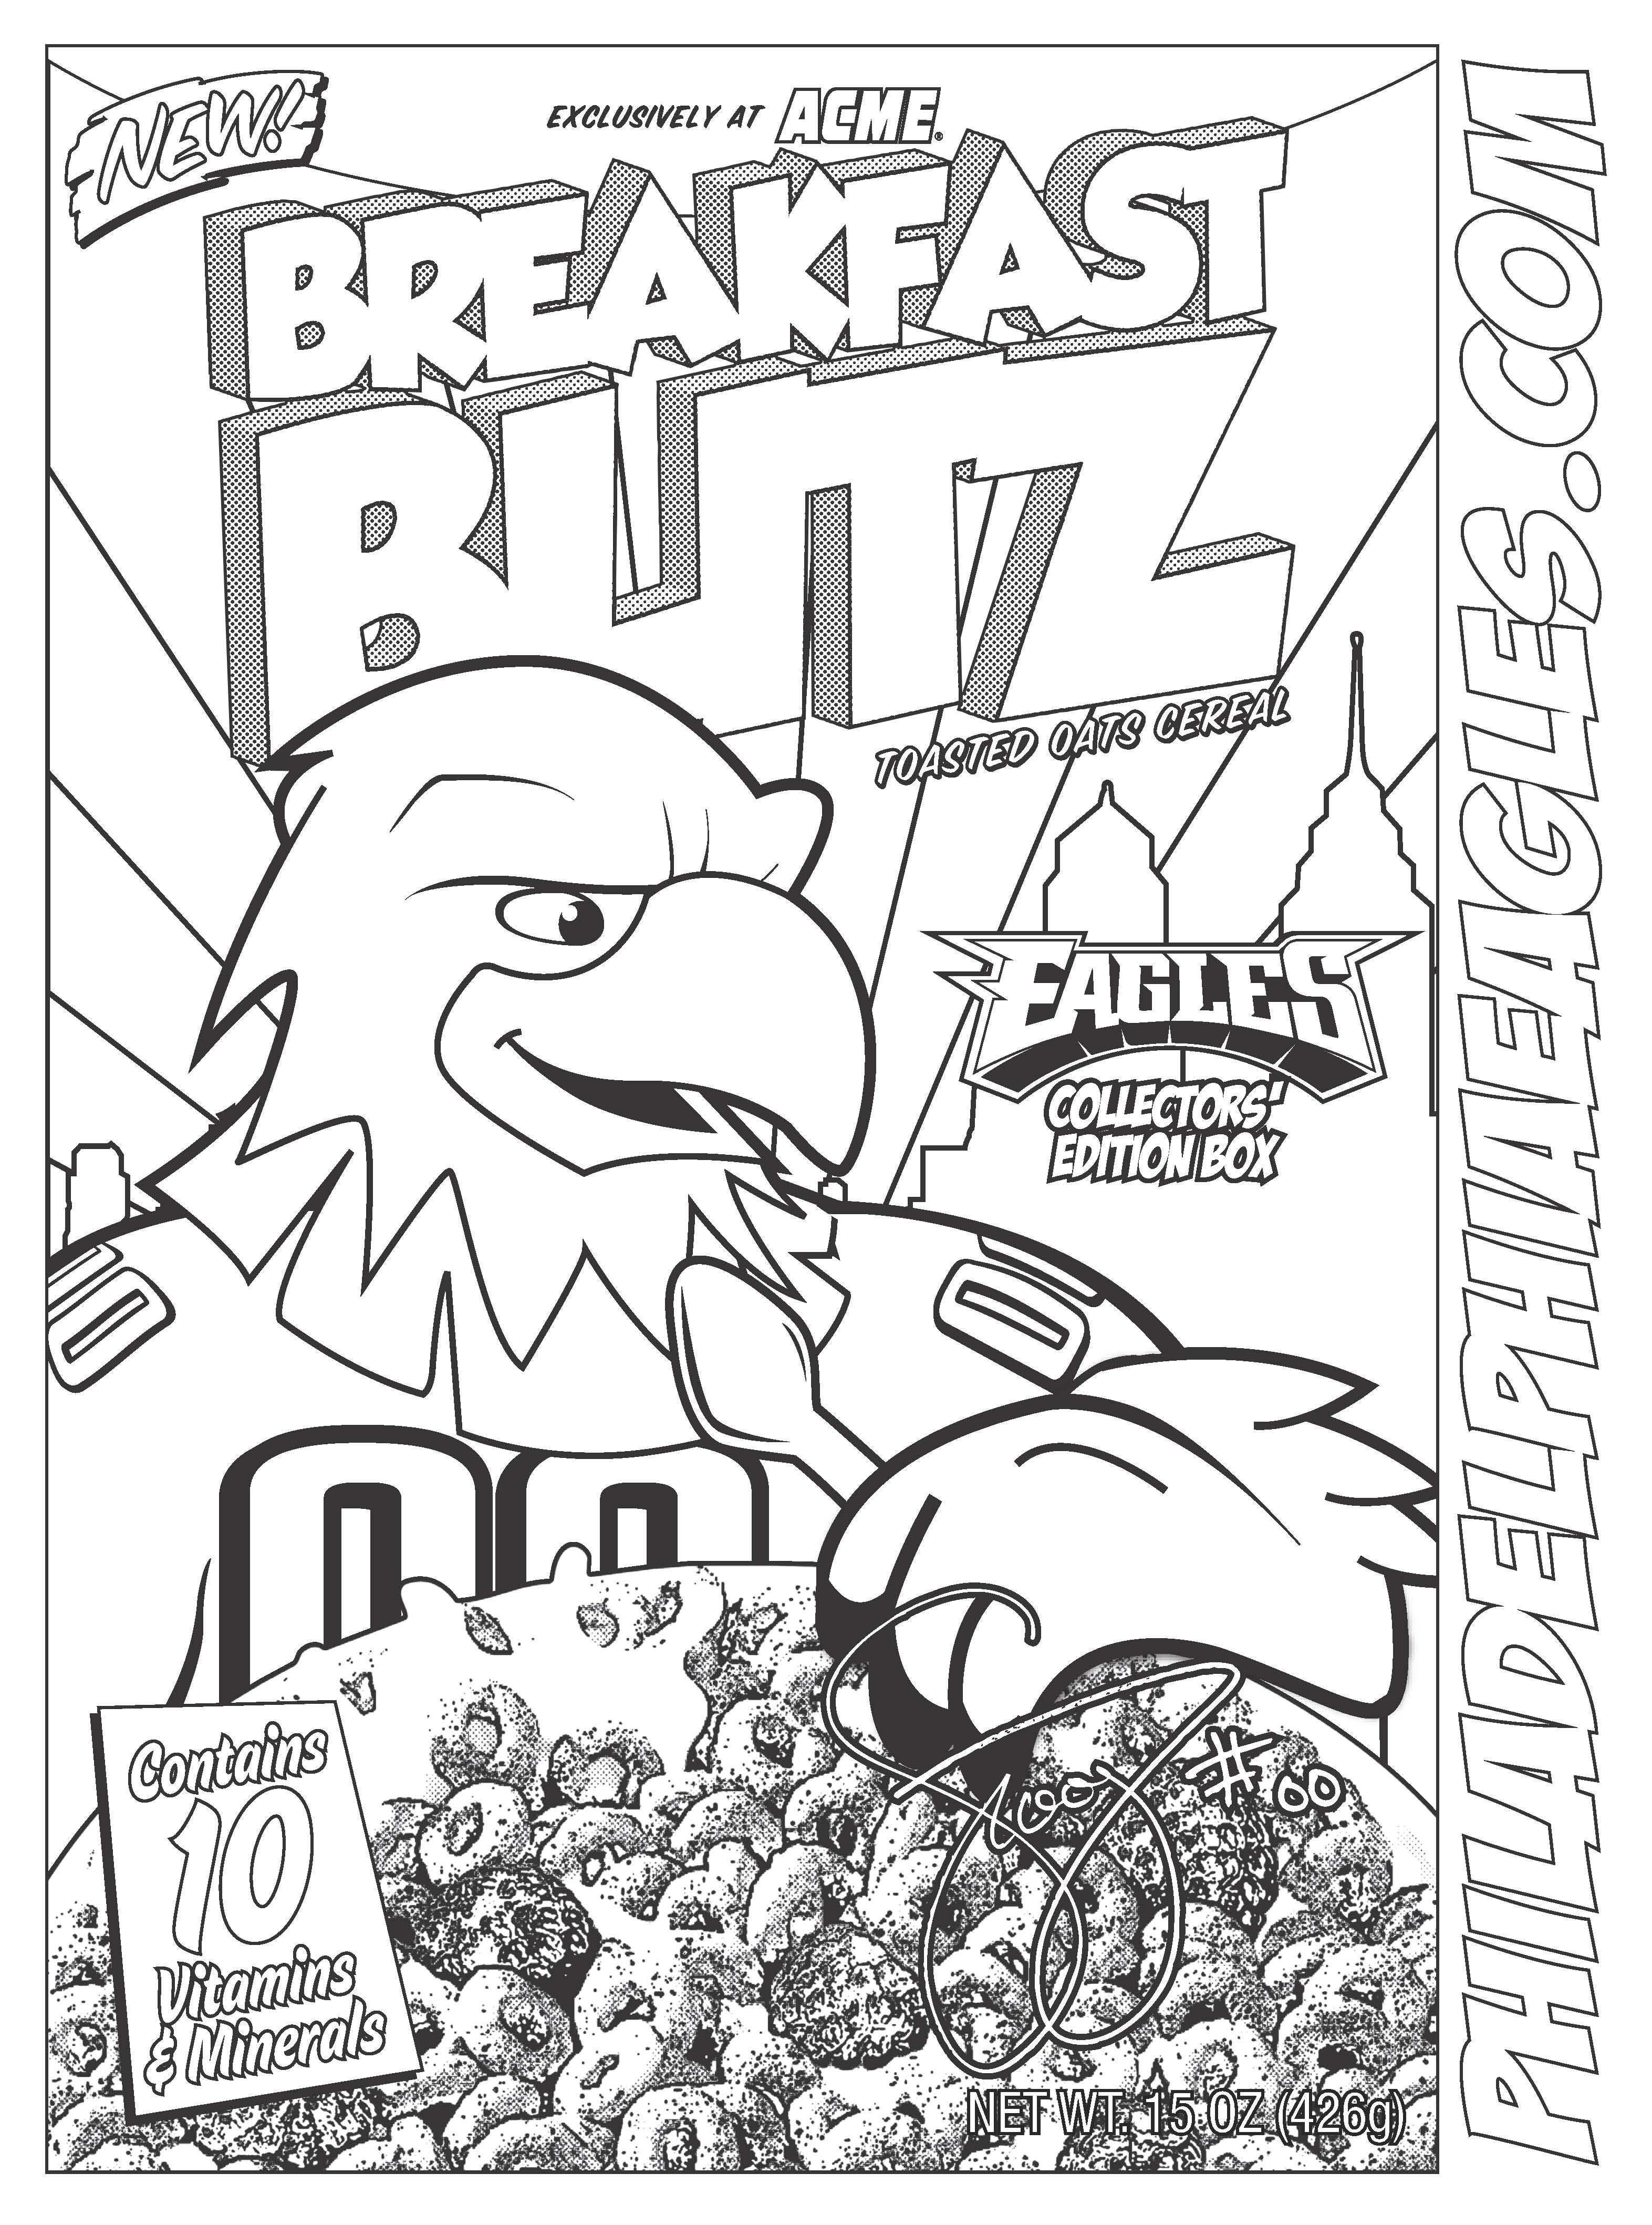 12 Pics of Seahawks Coloring Pages Preschool - Seattle Seahawks ...